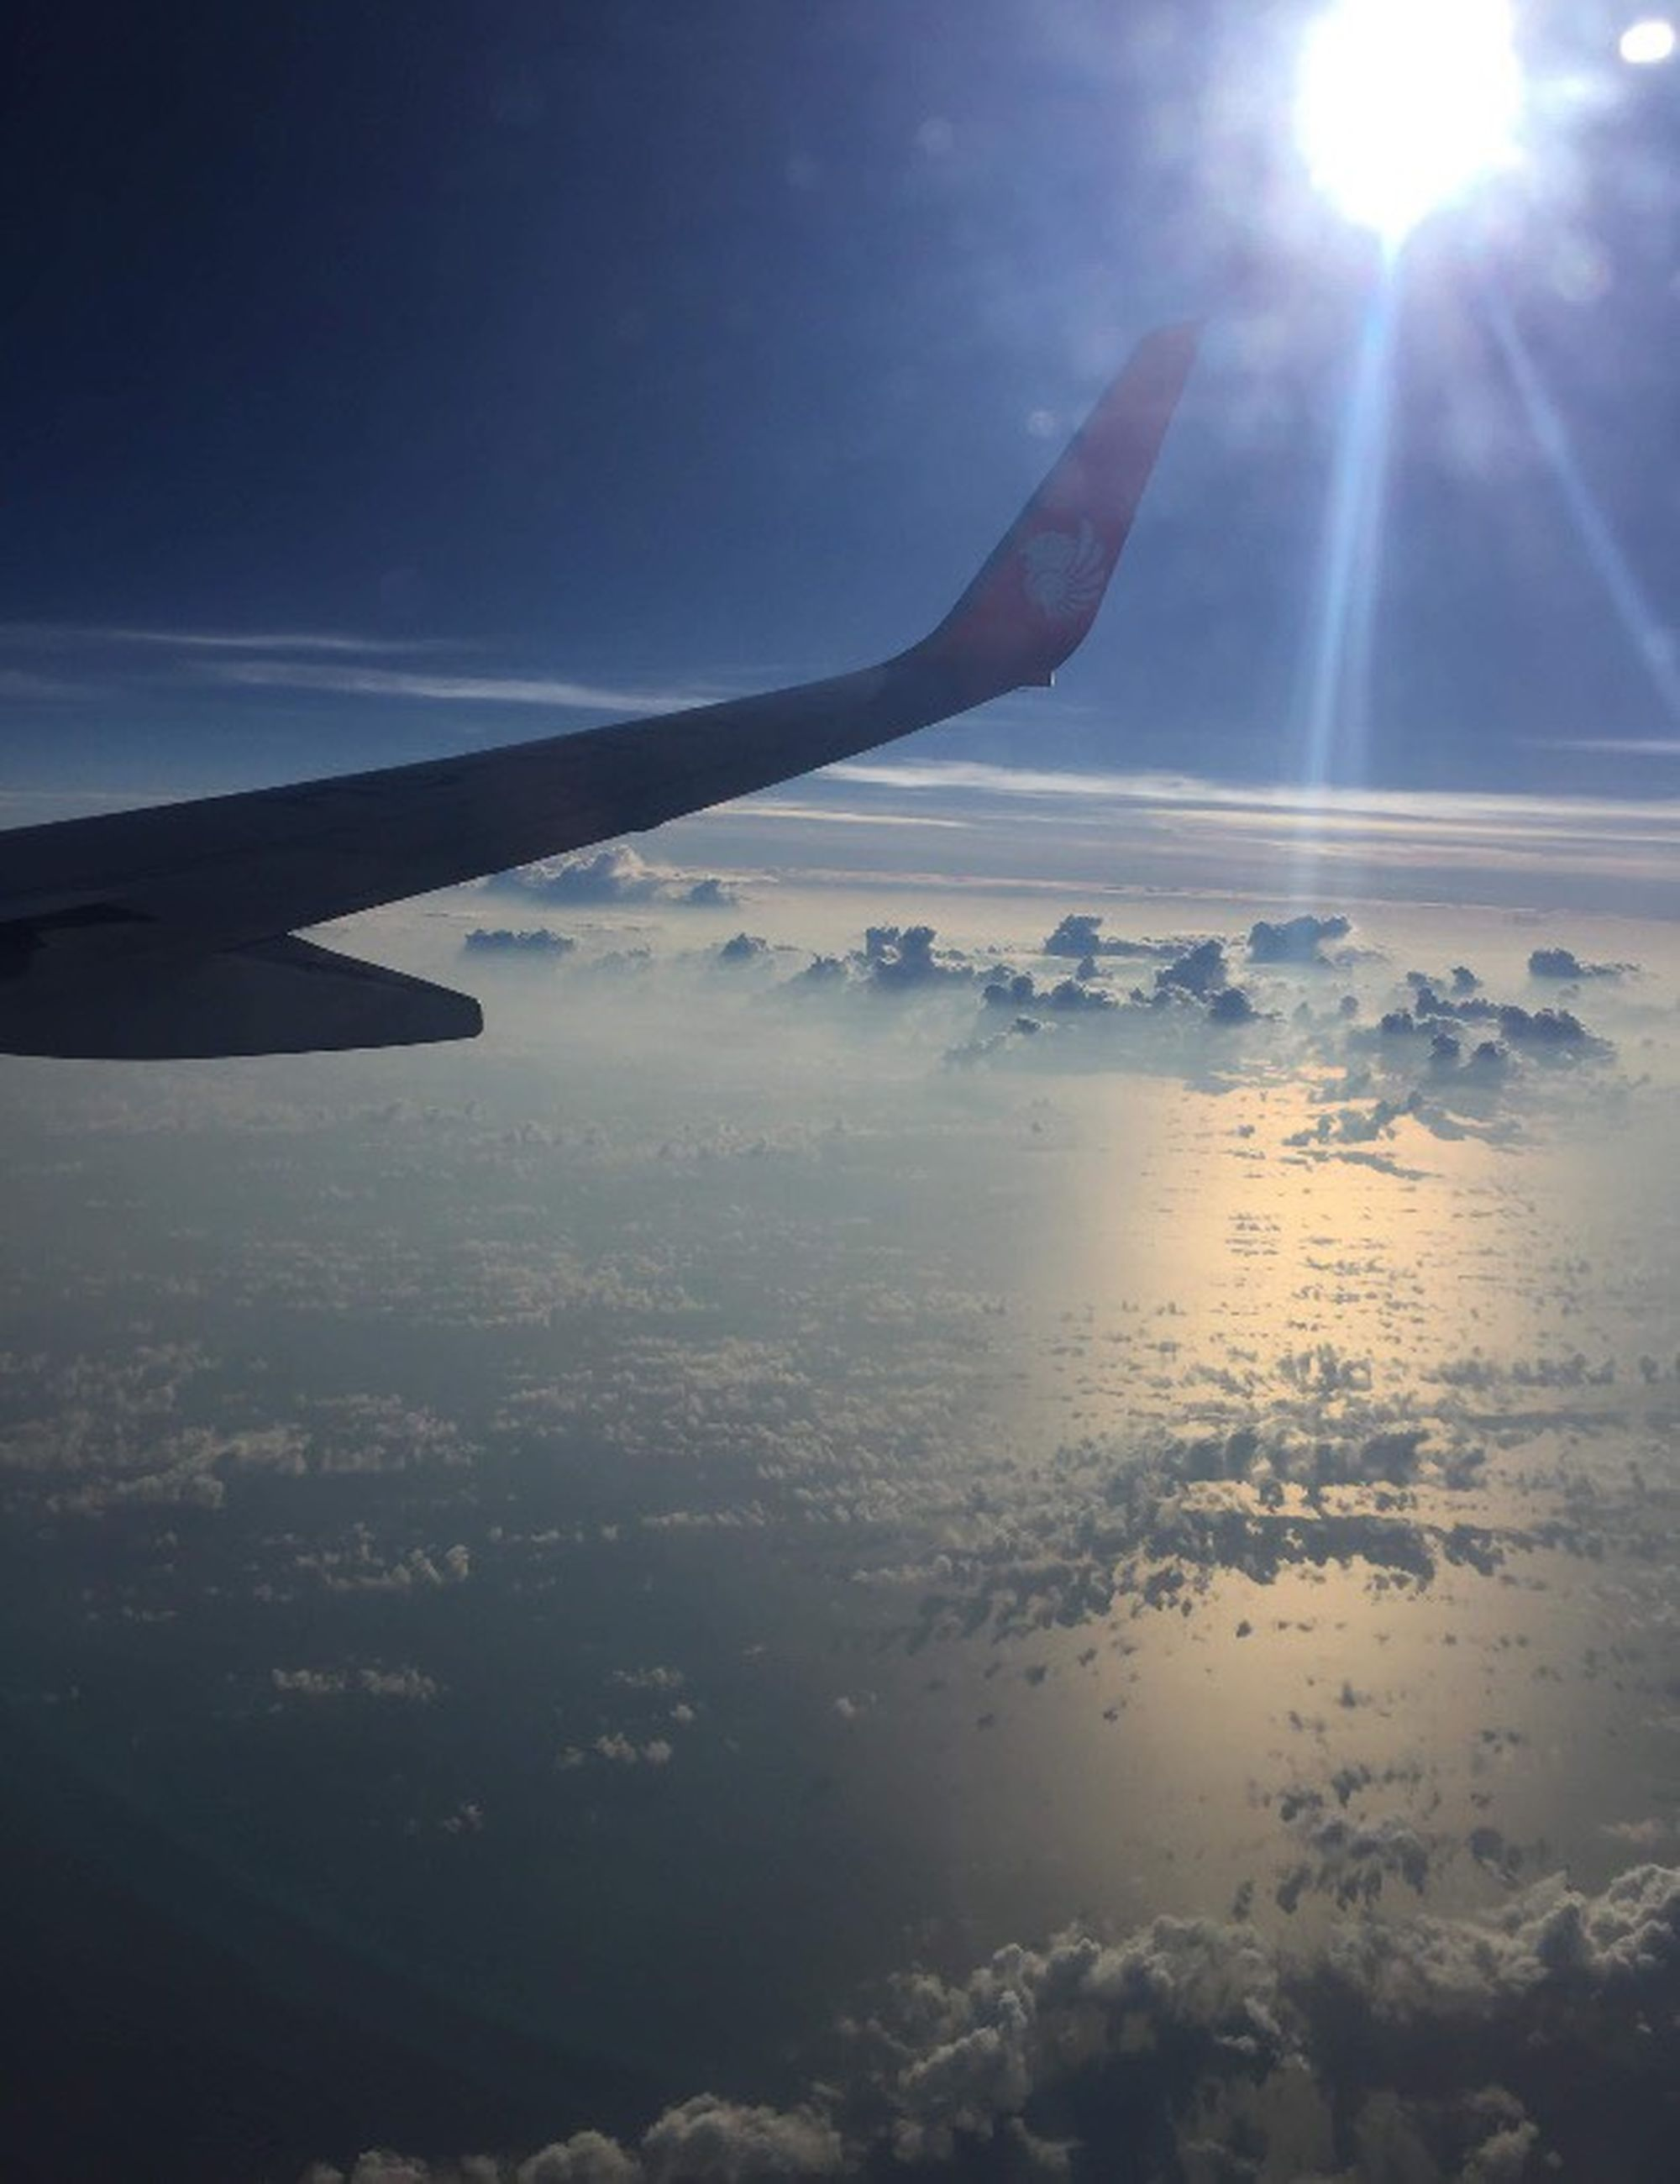 airplane, airplane wing, sky, transportation, aerial view, sun, air vehicle, sunbeam, nature, journey, flying, lens flare, cloud - sky, mid-air, aircraft wing, sunlight, beauty in nature, no people, scenics, mode of transport, outdoors, travel, day, sunset